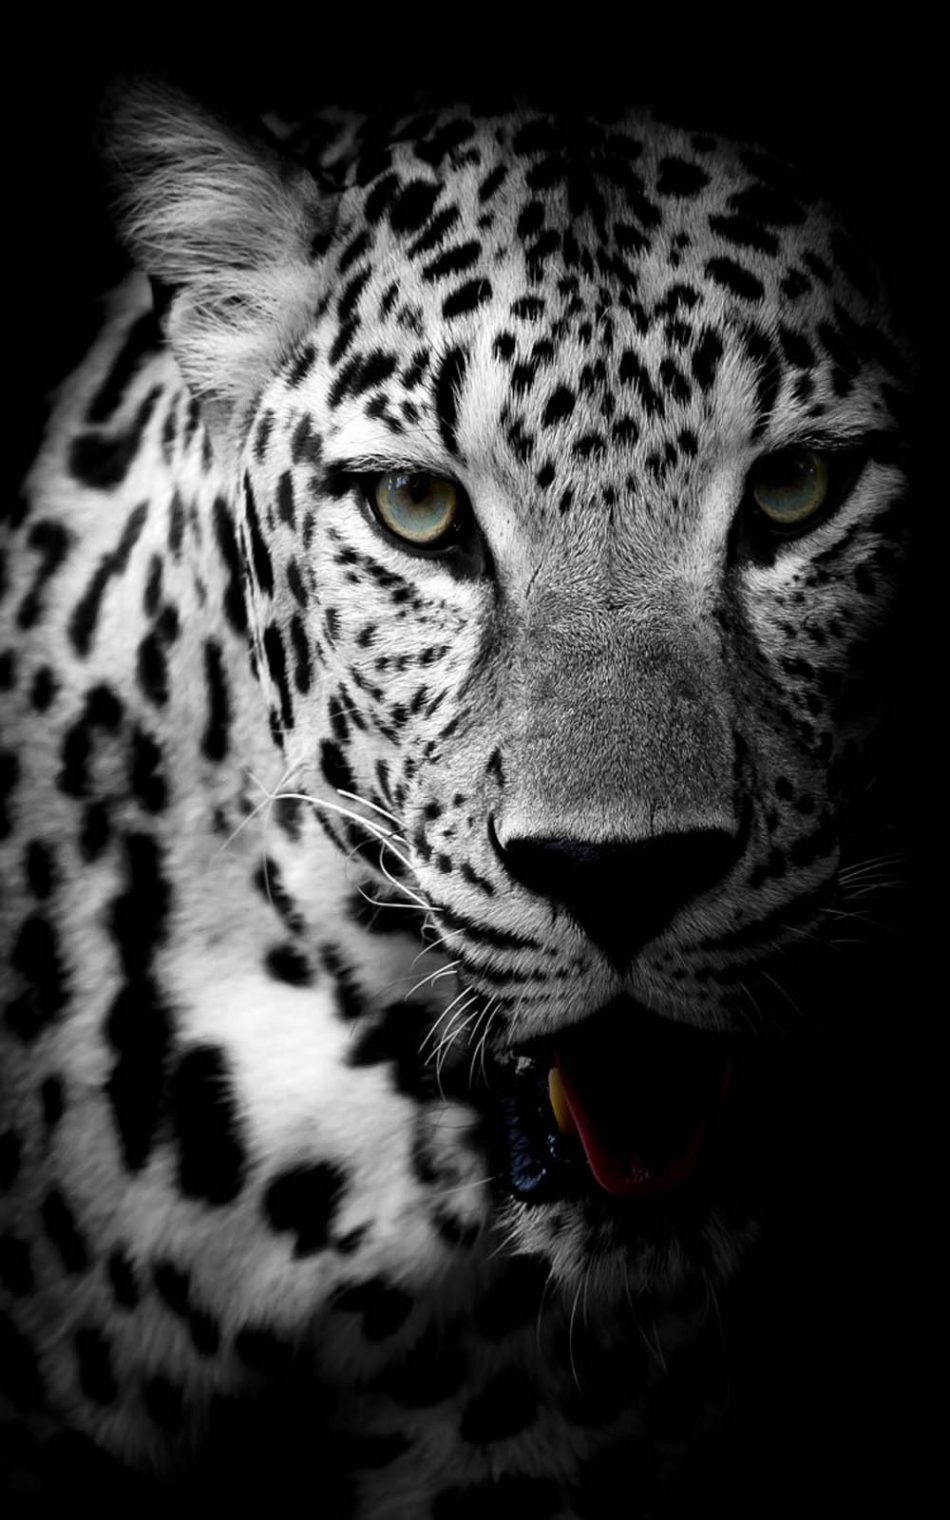 Leopard Black White Hd Mobile Wallpaper Leopard Wallpaper Wild Animal Wallpaper Animals Black And White